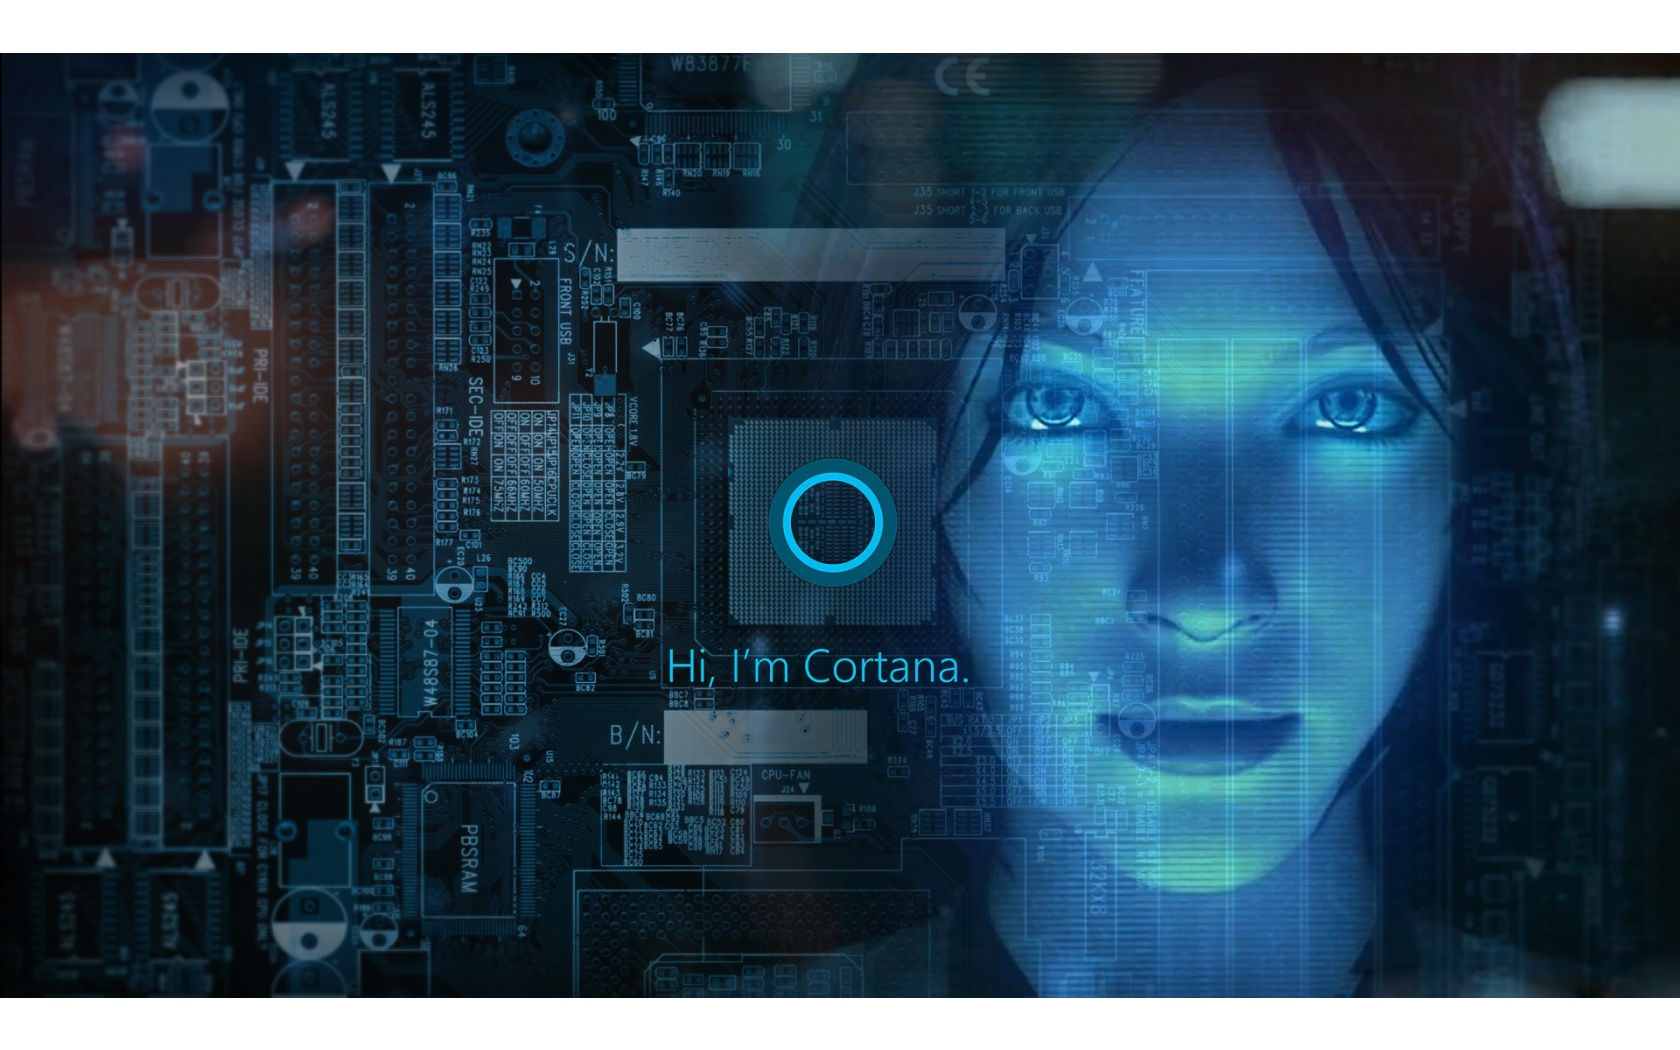 ... sub categories windows 10 tags hd wallpapers face bot robot windows 10